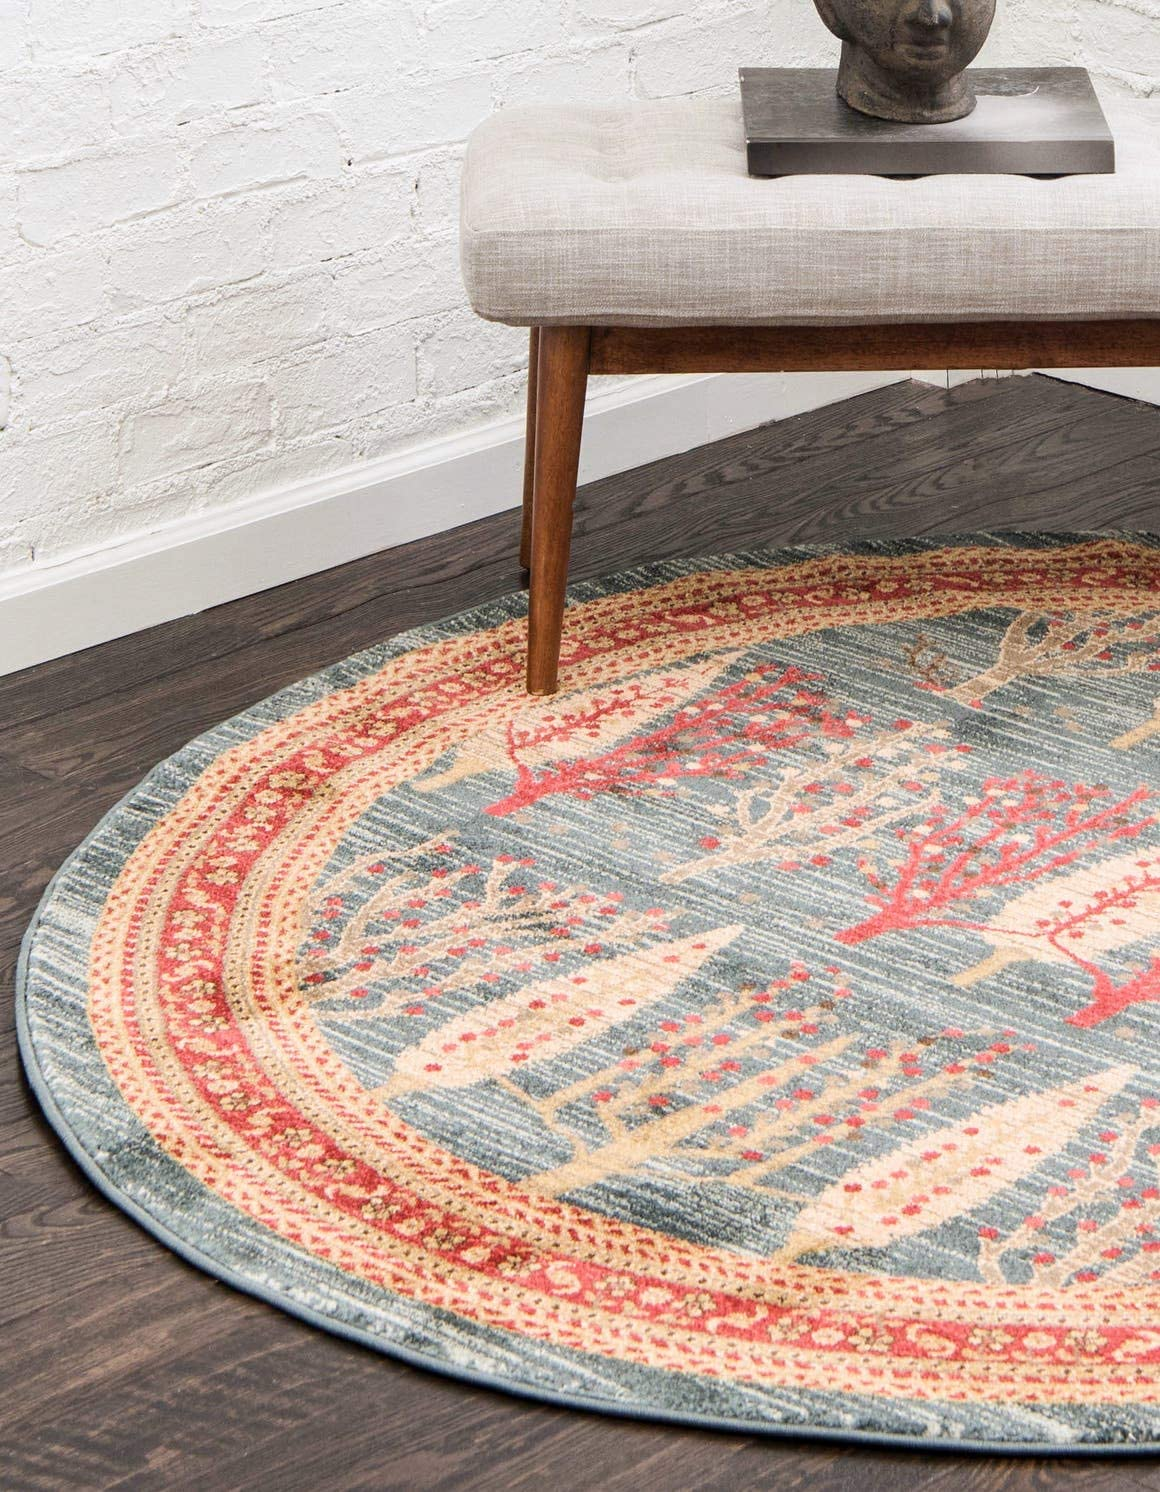 Unique Loom Fars Collection Tribal Modern Casual Blue Round Rug 3 3 x 3 3